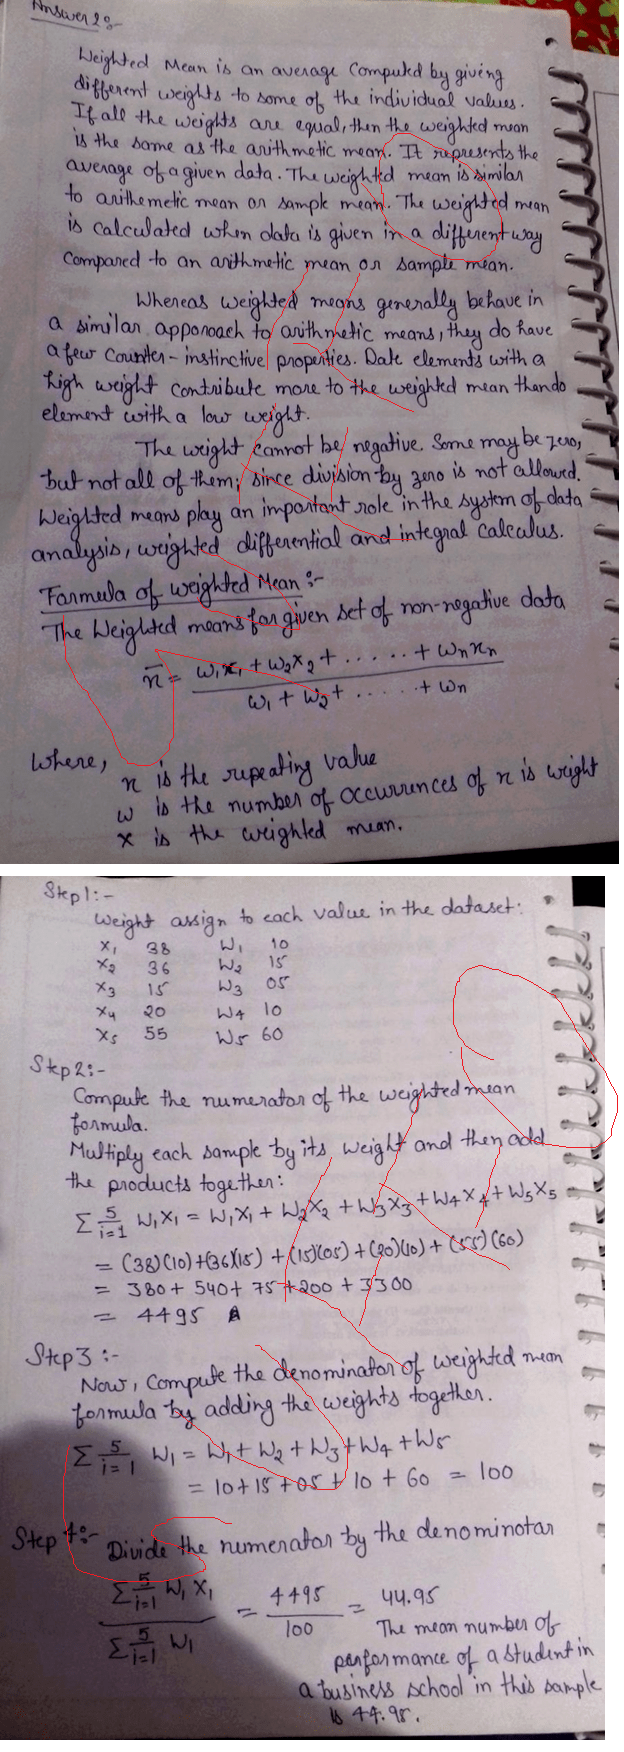 The performance of a student in a business school was evaluated as follows. Calculate weighted mean from the given data and distinguish between weighted arithmetic mean and simple arithmetic mean. Marks Obtained Weights Class test Presentation Attendance Class participation Final examination 38 36 15 20 55 10 15 05 10 60